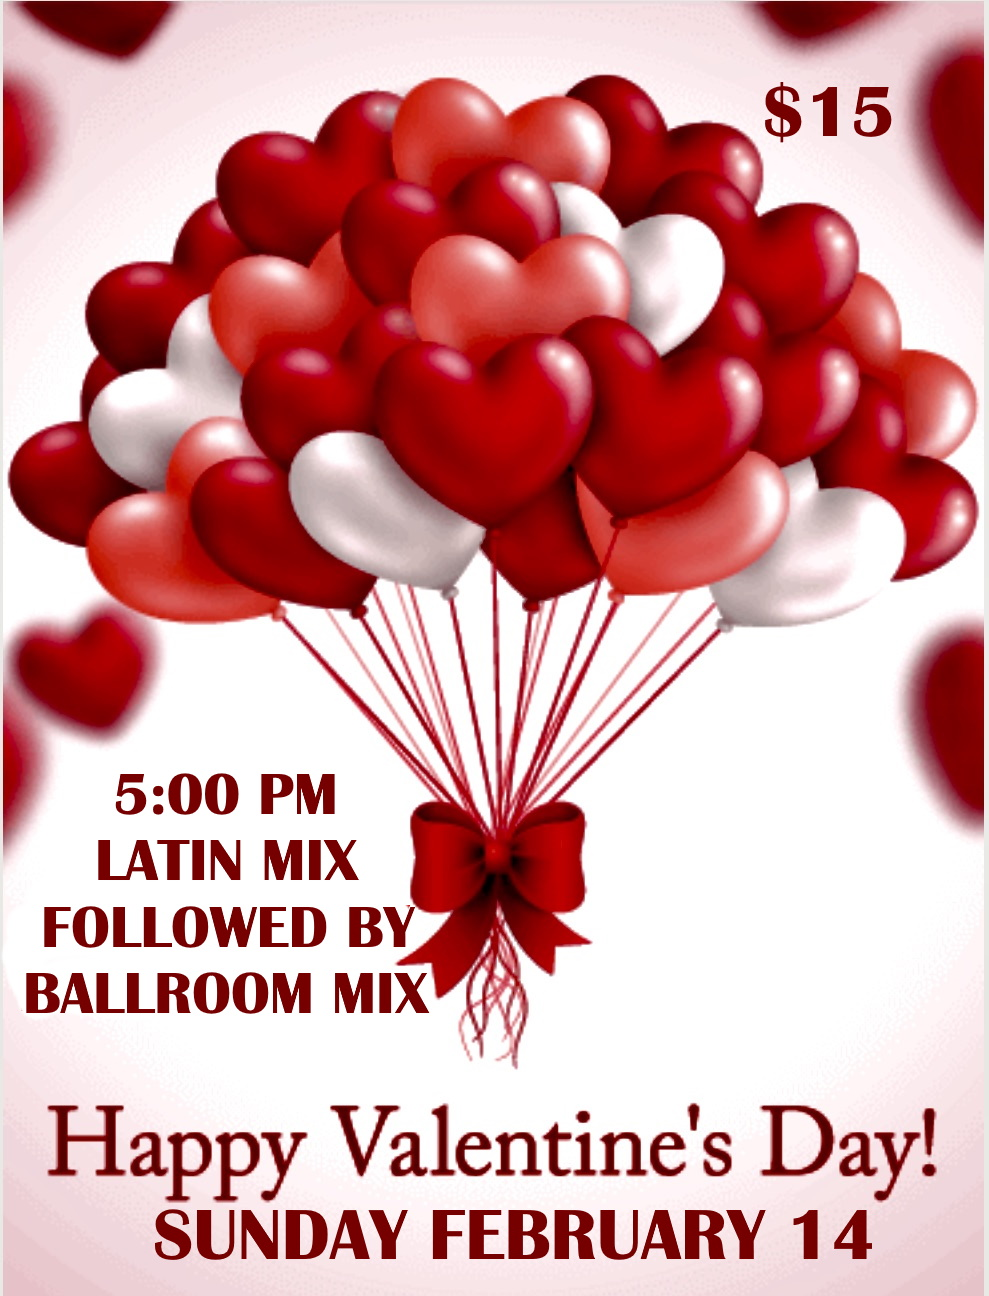 Happy Valentine's Day Party! - Sunday, February 14, 2021 - 5:00 PM - 11:00 PM